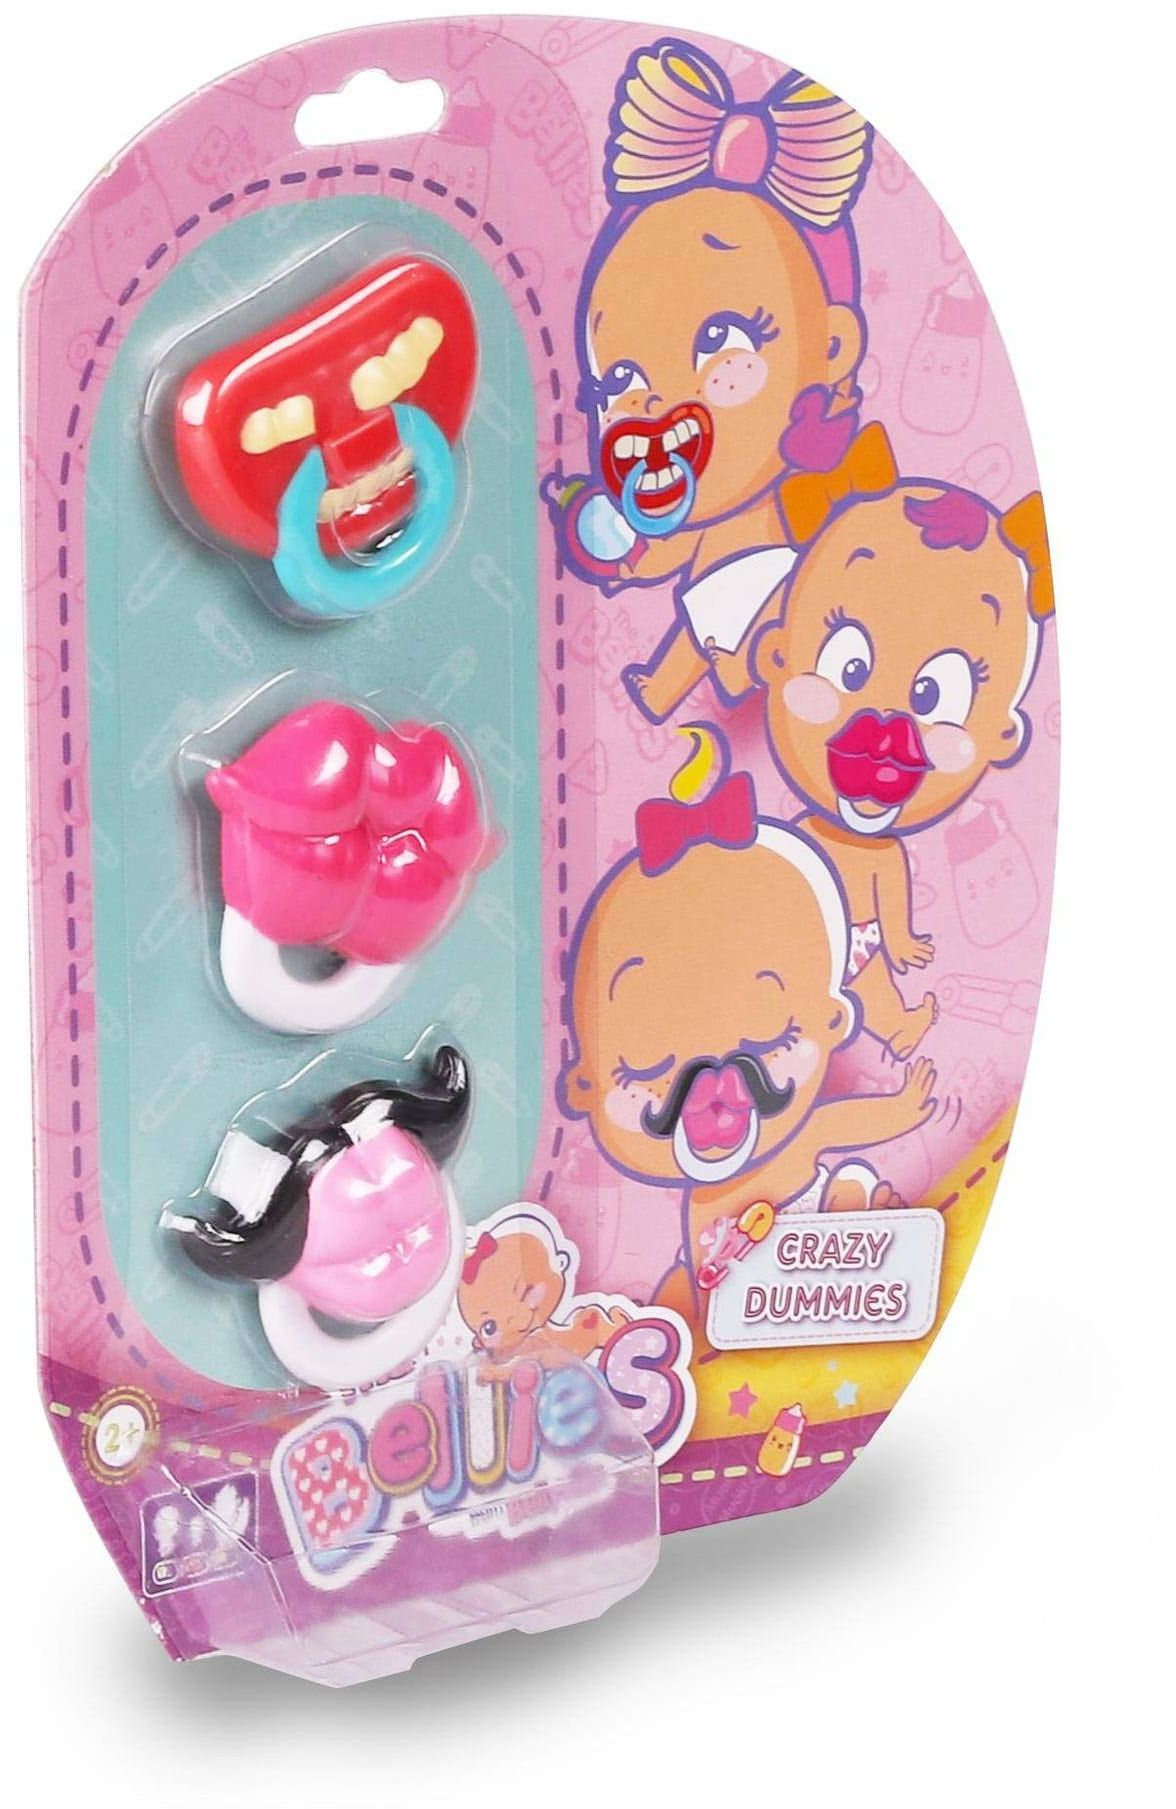 The Bellies from Bellyville 700016223 Baby doll Accessory